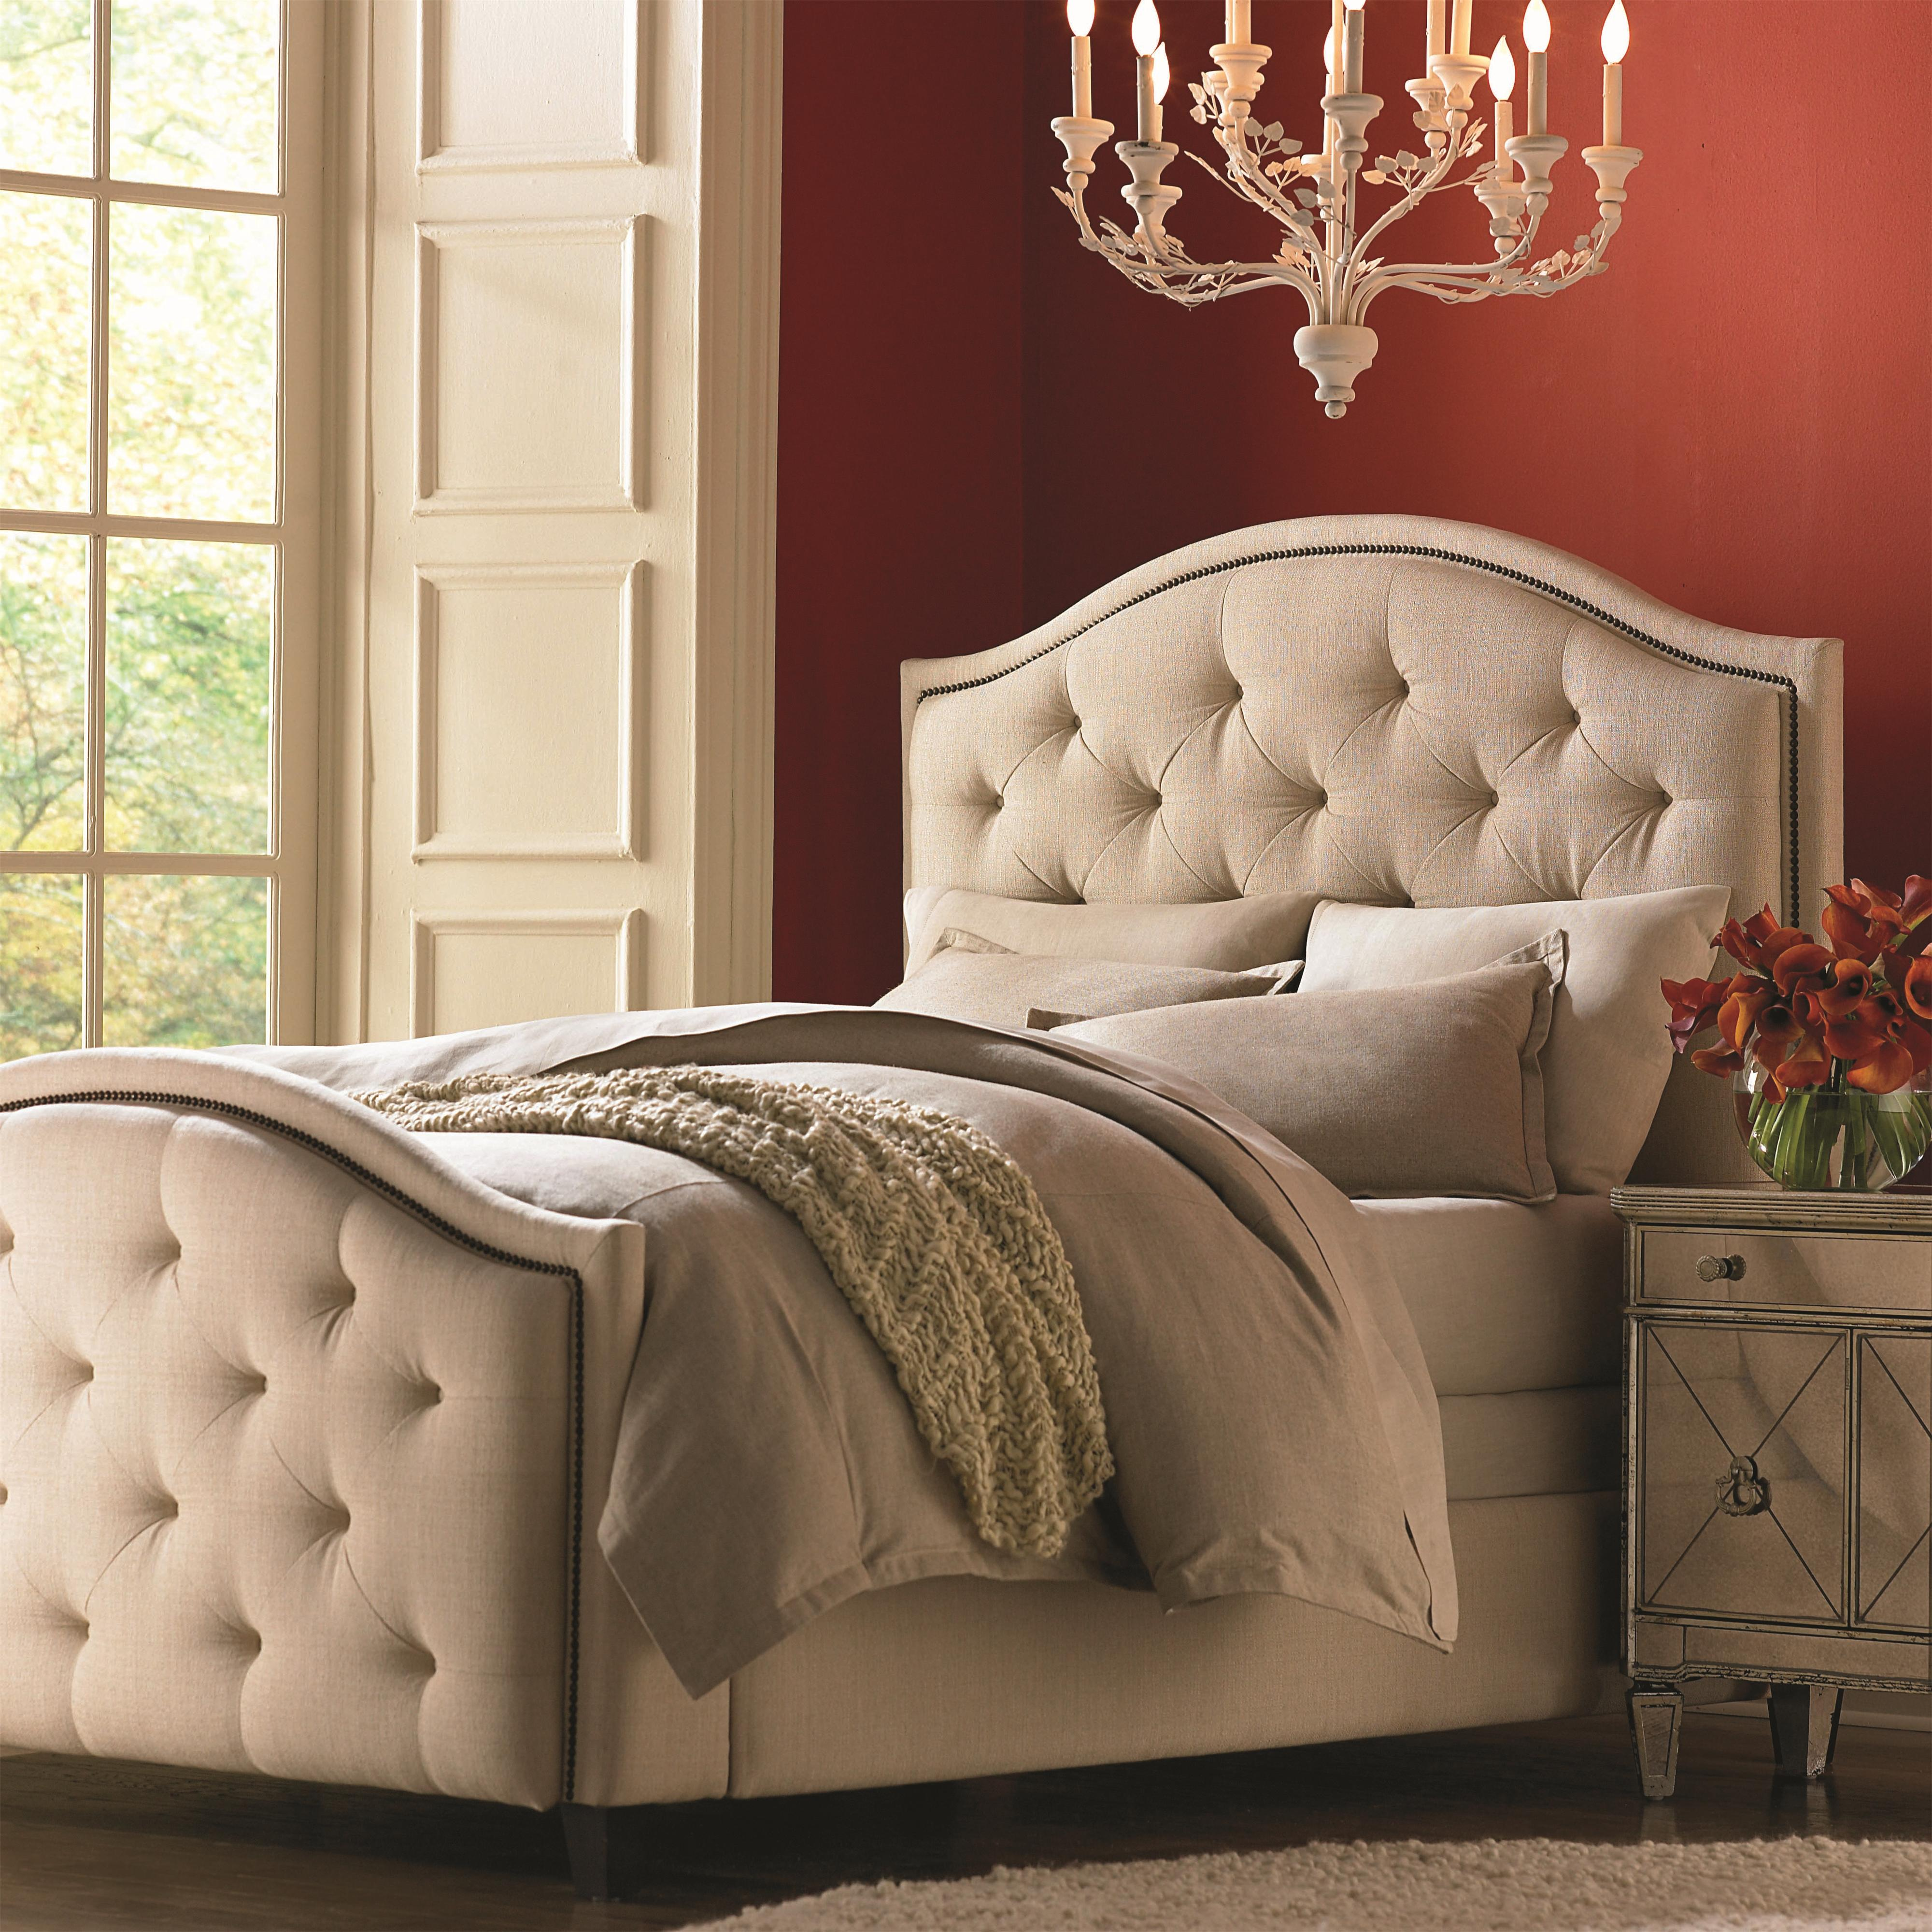 Custom Upholstered Beds King Vienna Upholstered Bed with High FB  by Bassett at Bassett of Cool Springs